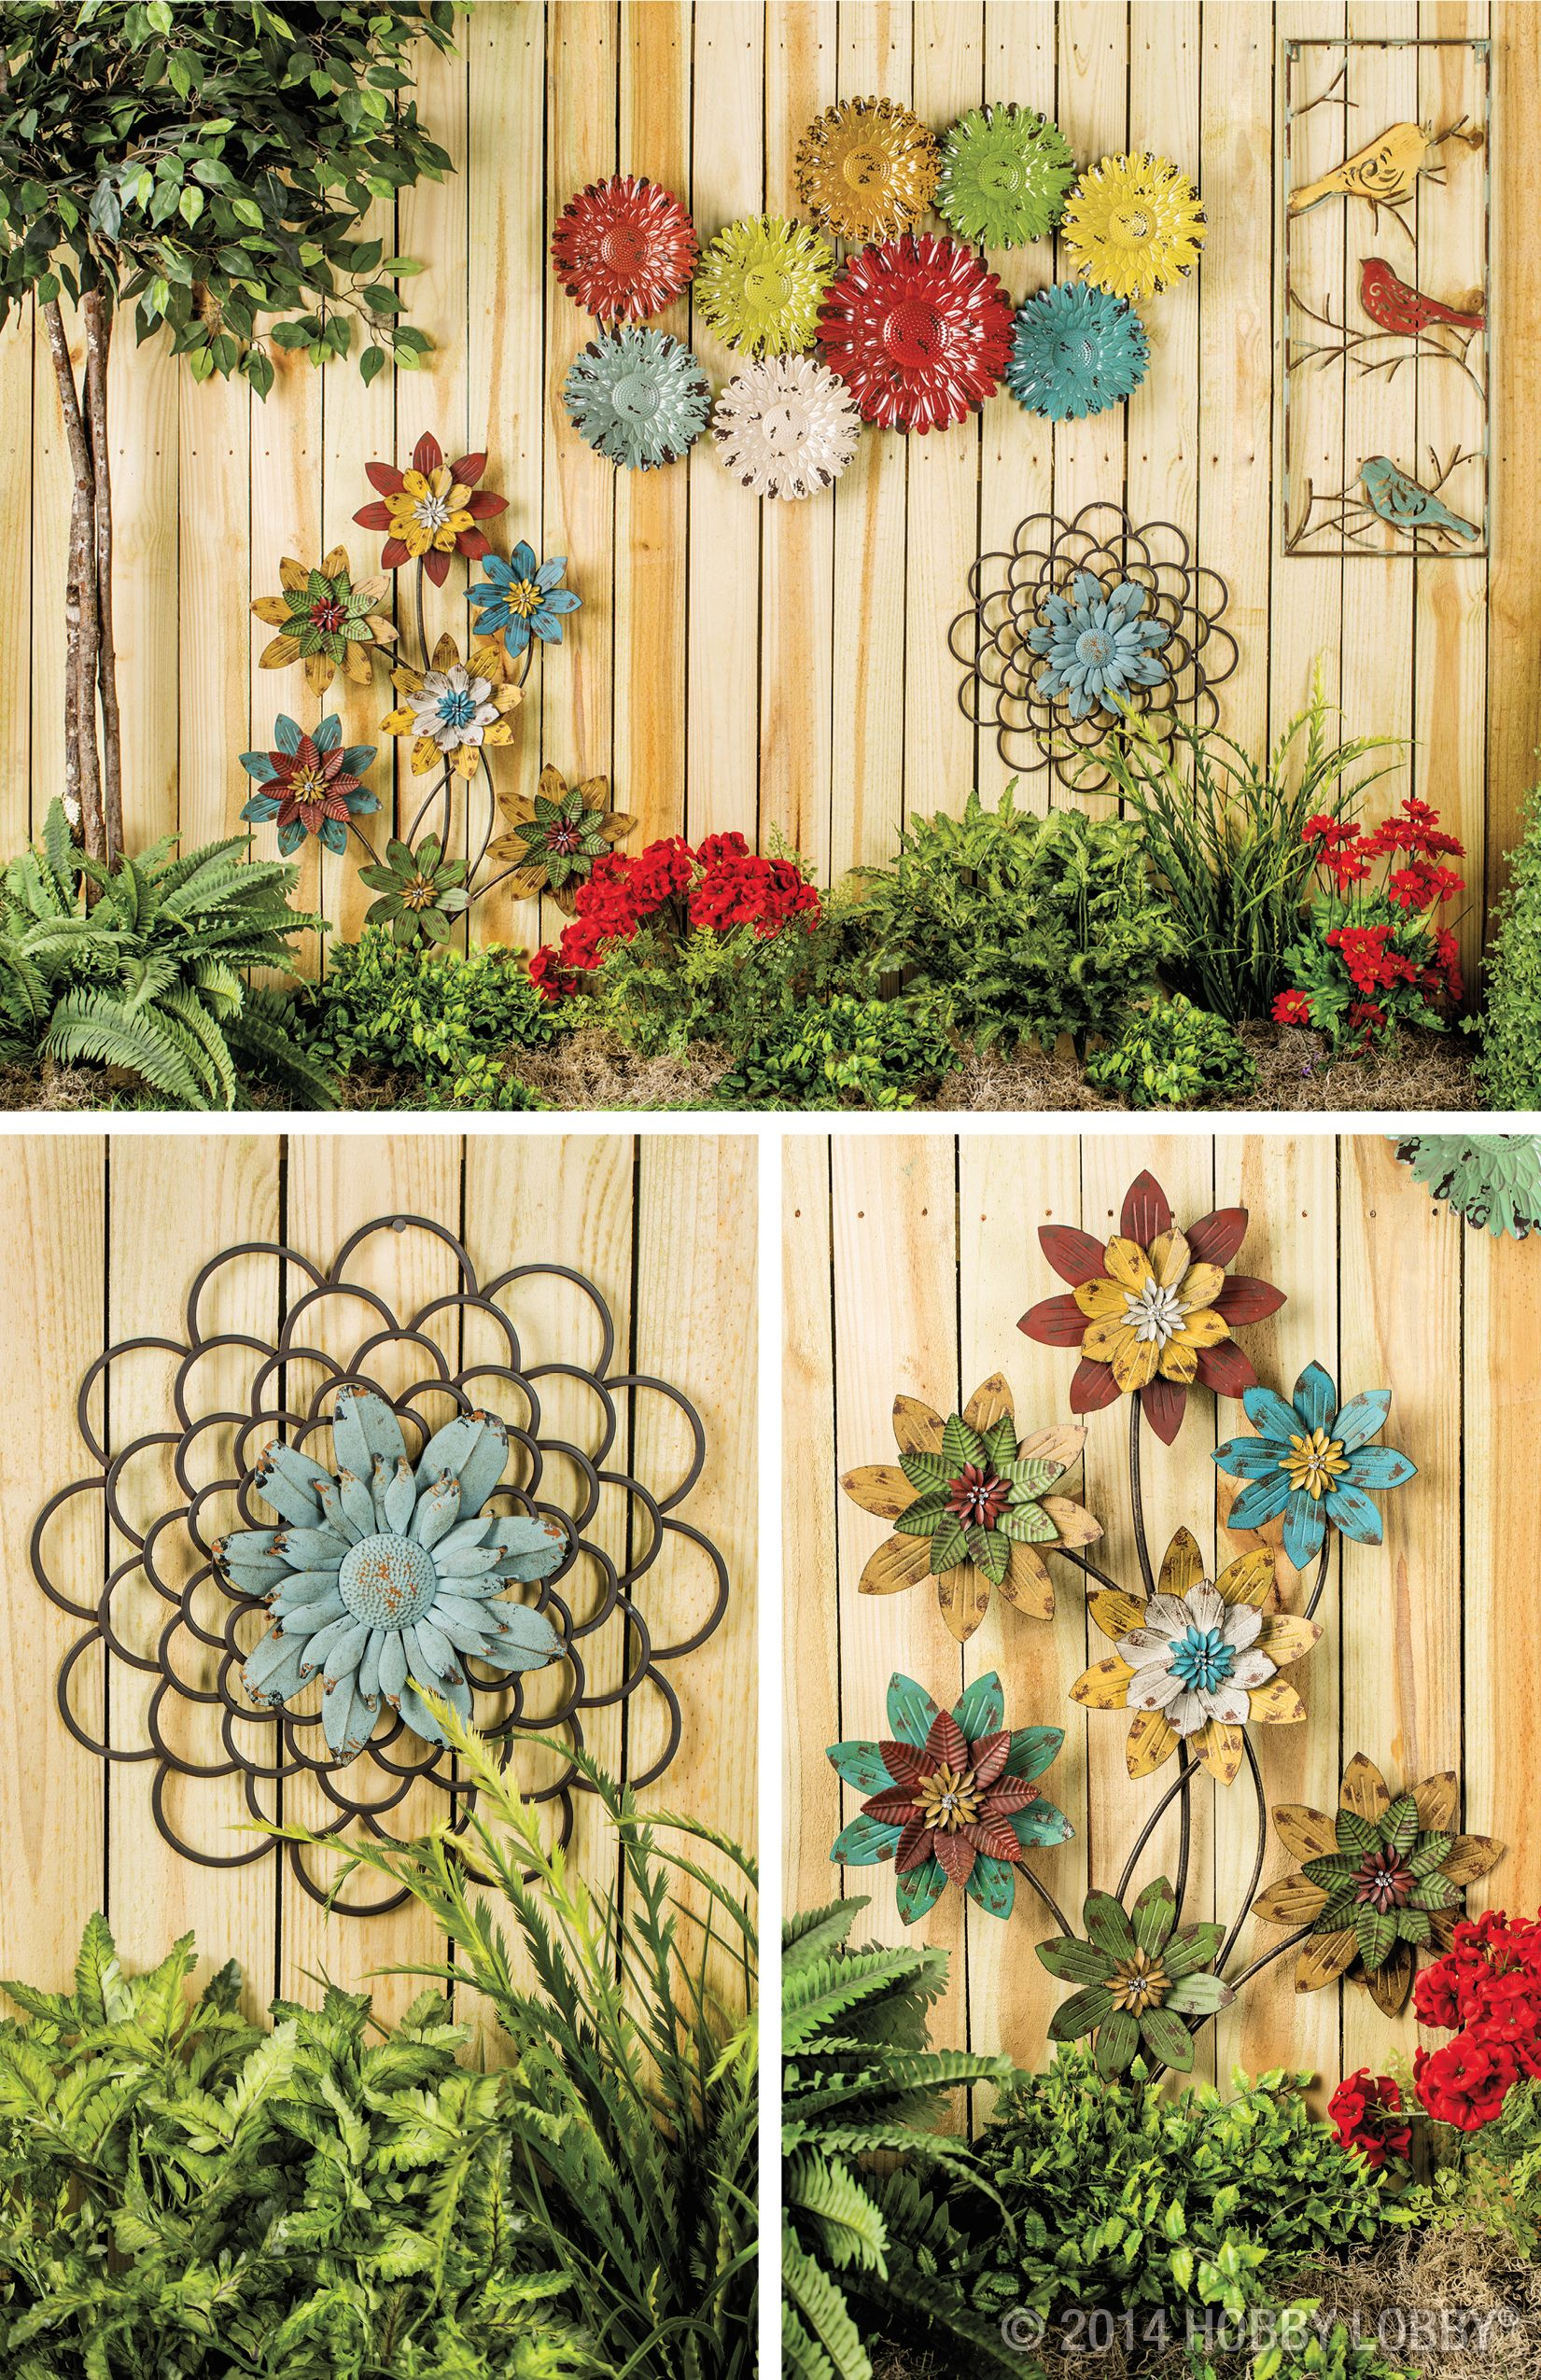 garden wall decoration ideas. Spring Shop  Seasonal Hobby Lobby Floral Wall ArtMetal Flower DecorGarden Ideas Your home decor will blossom with an eye catching array of floral